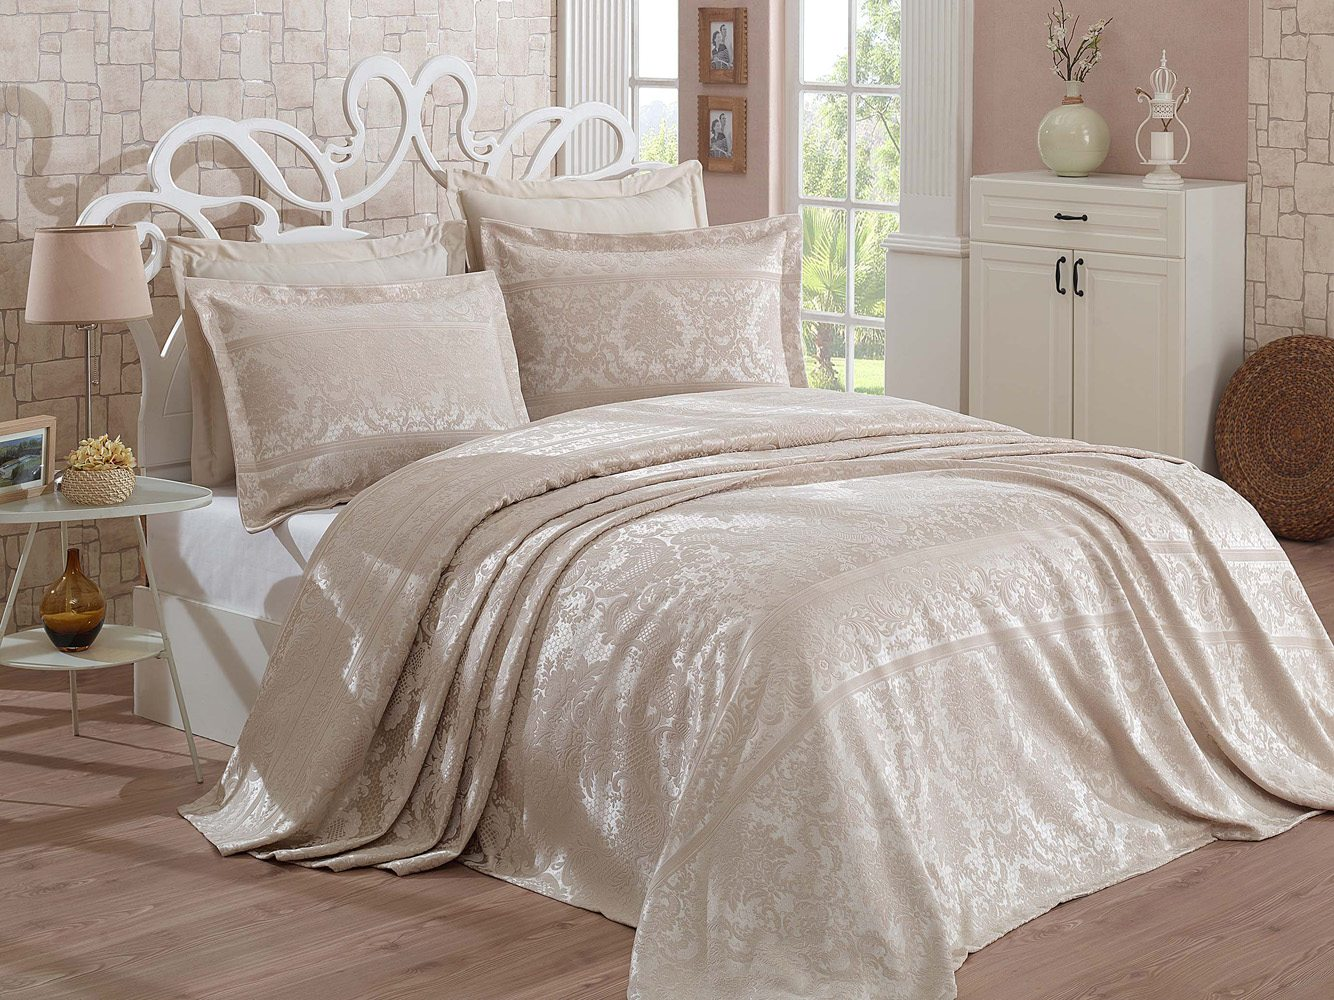 jacquard bedspread set with two decorative pillowcases